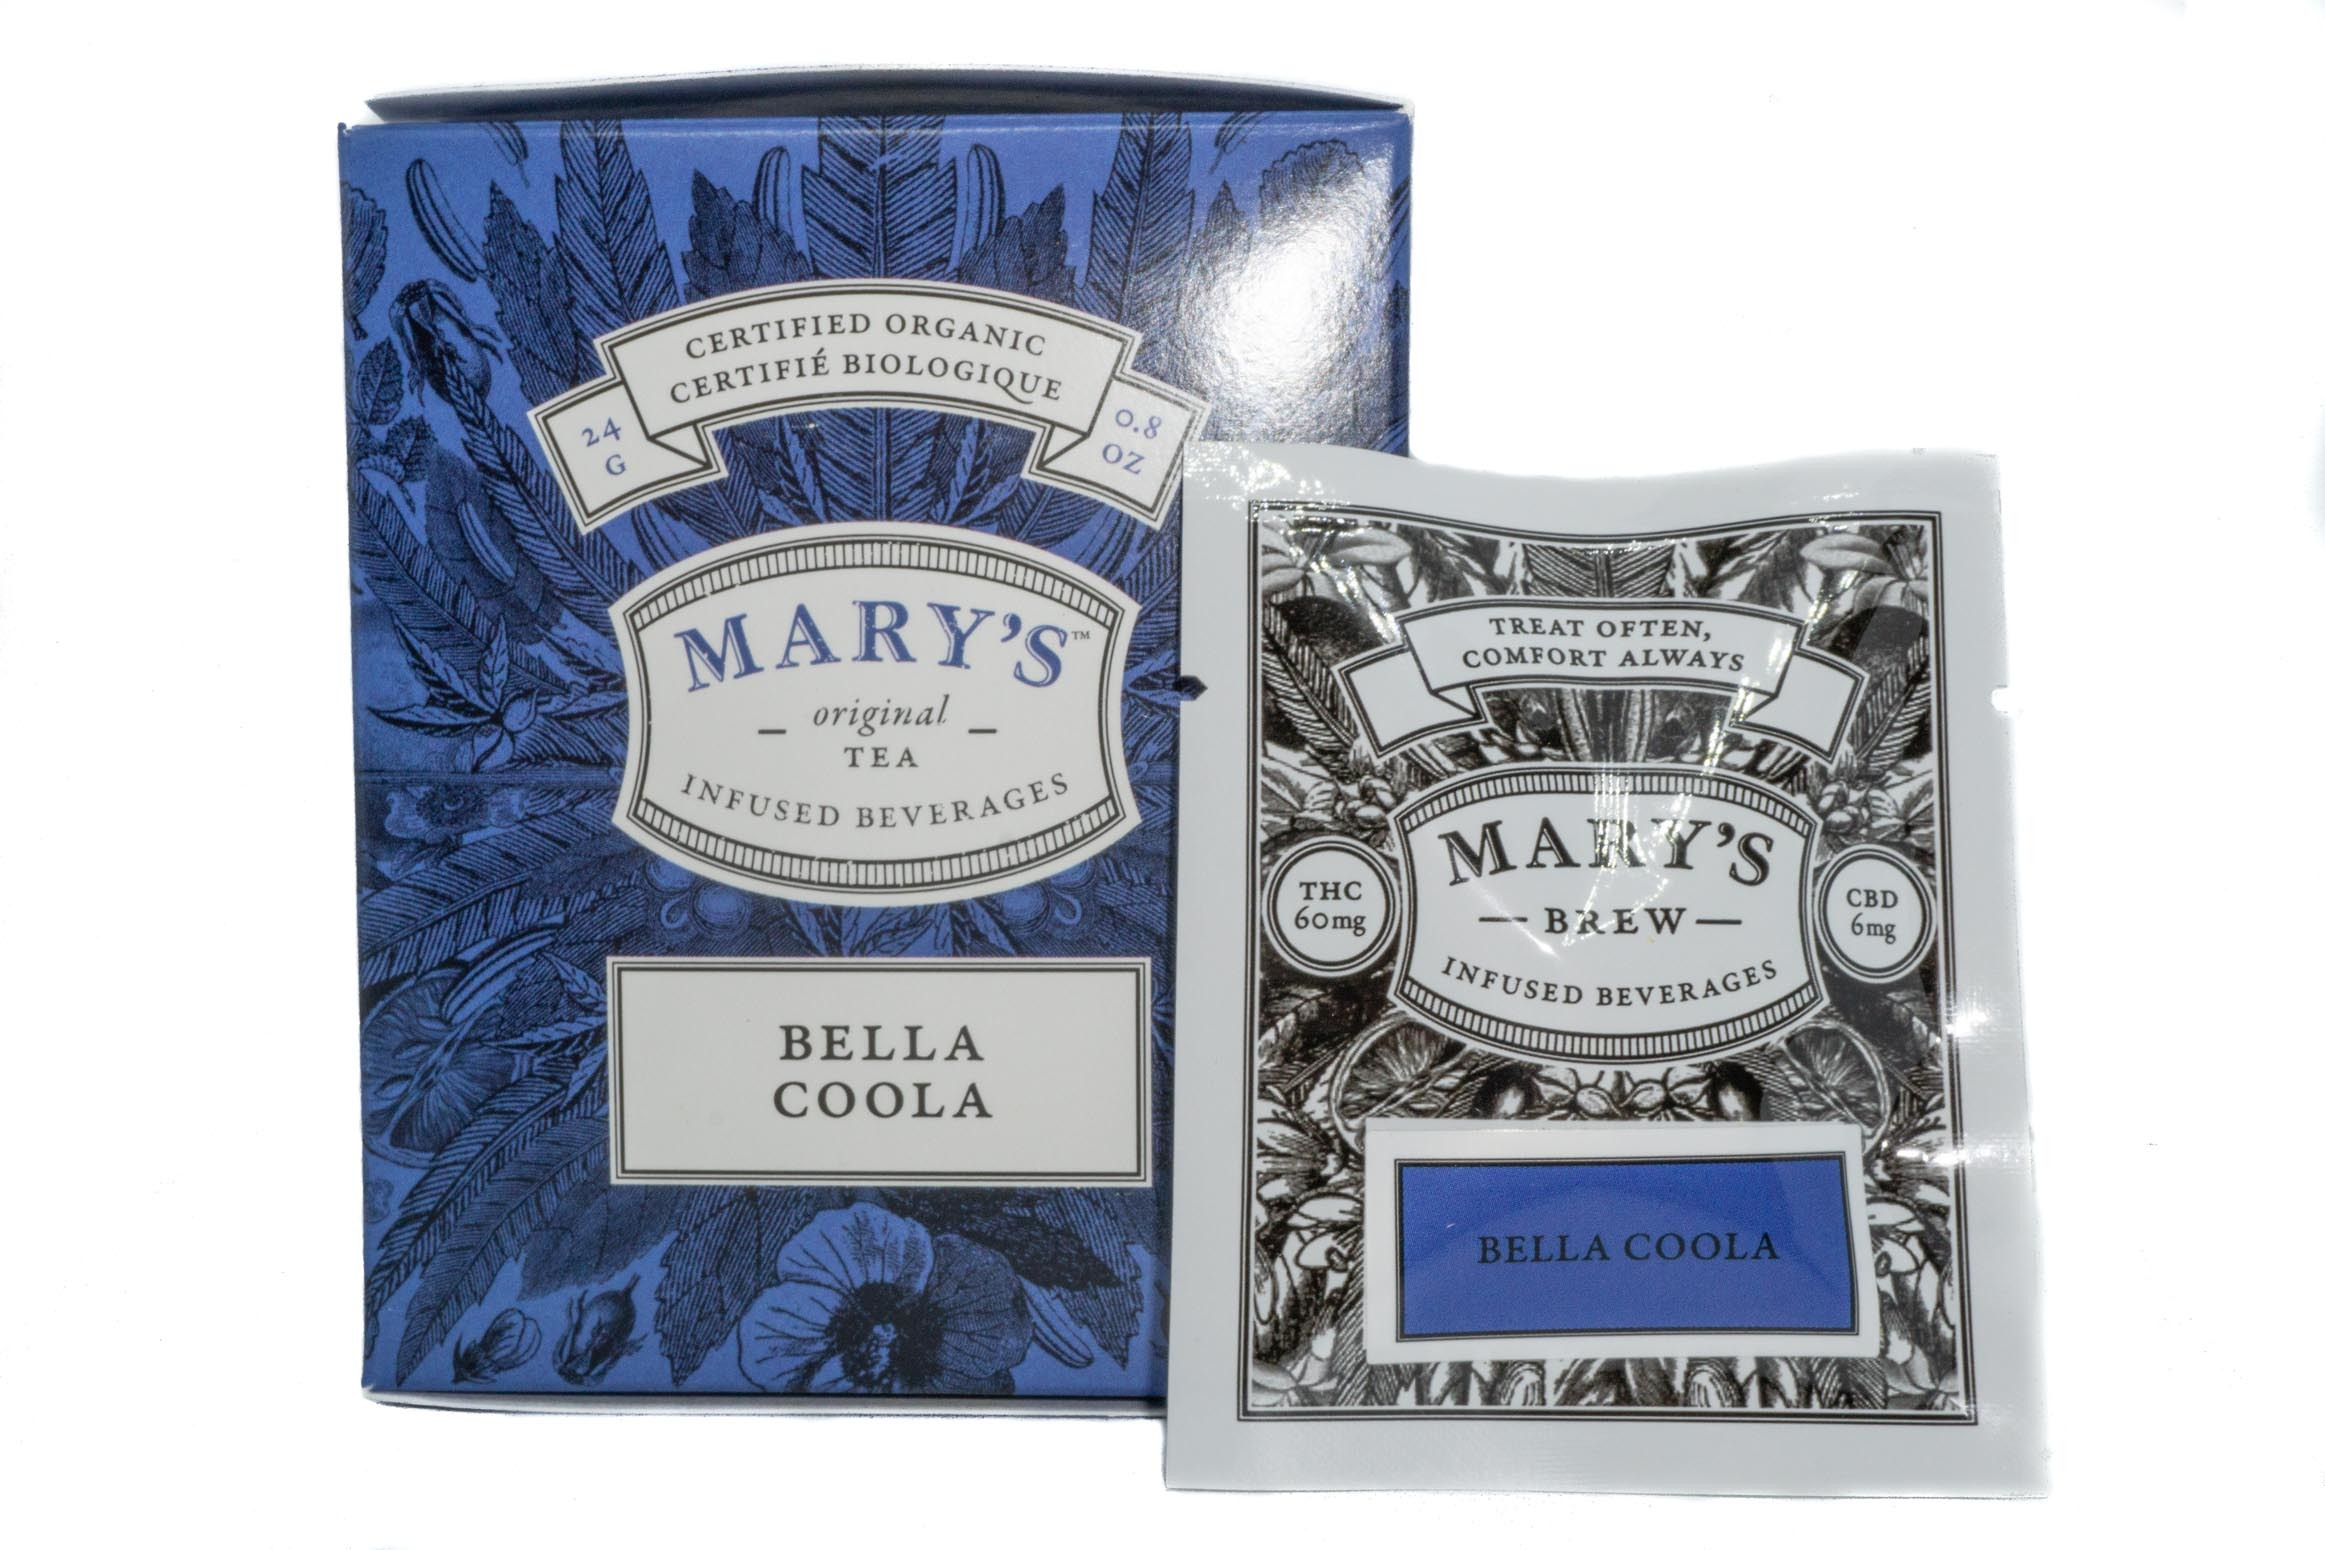 Mary's Wellness Bella Coola Tea (Single Sachet) (60mg THC/6mg CBD) 01235